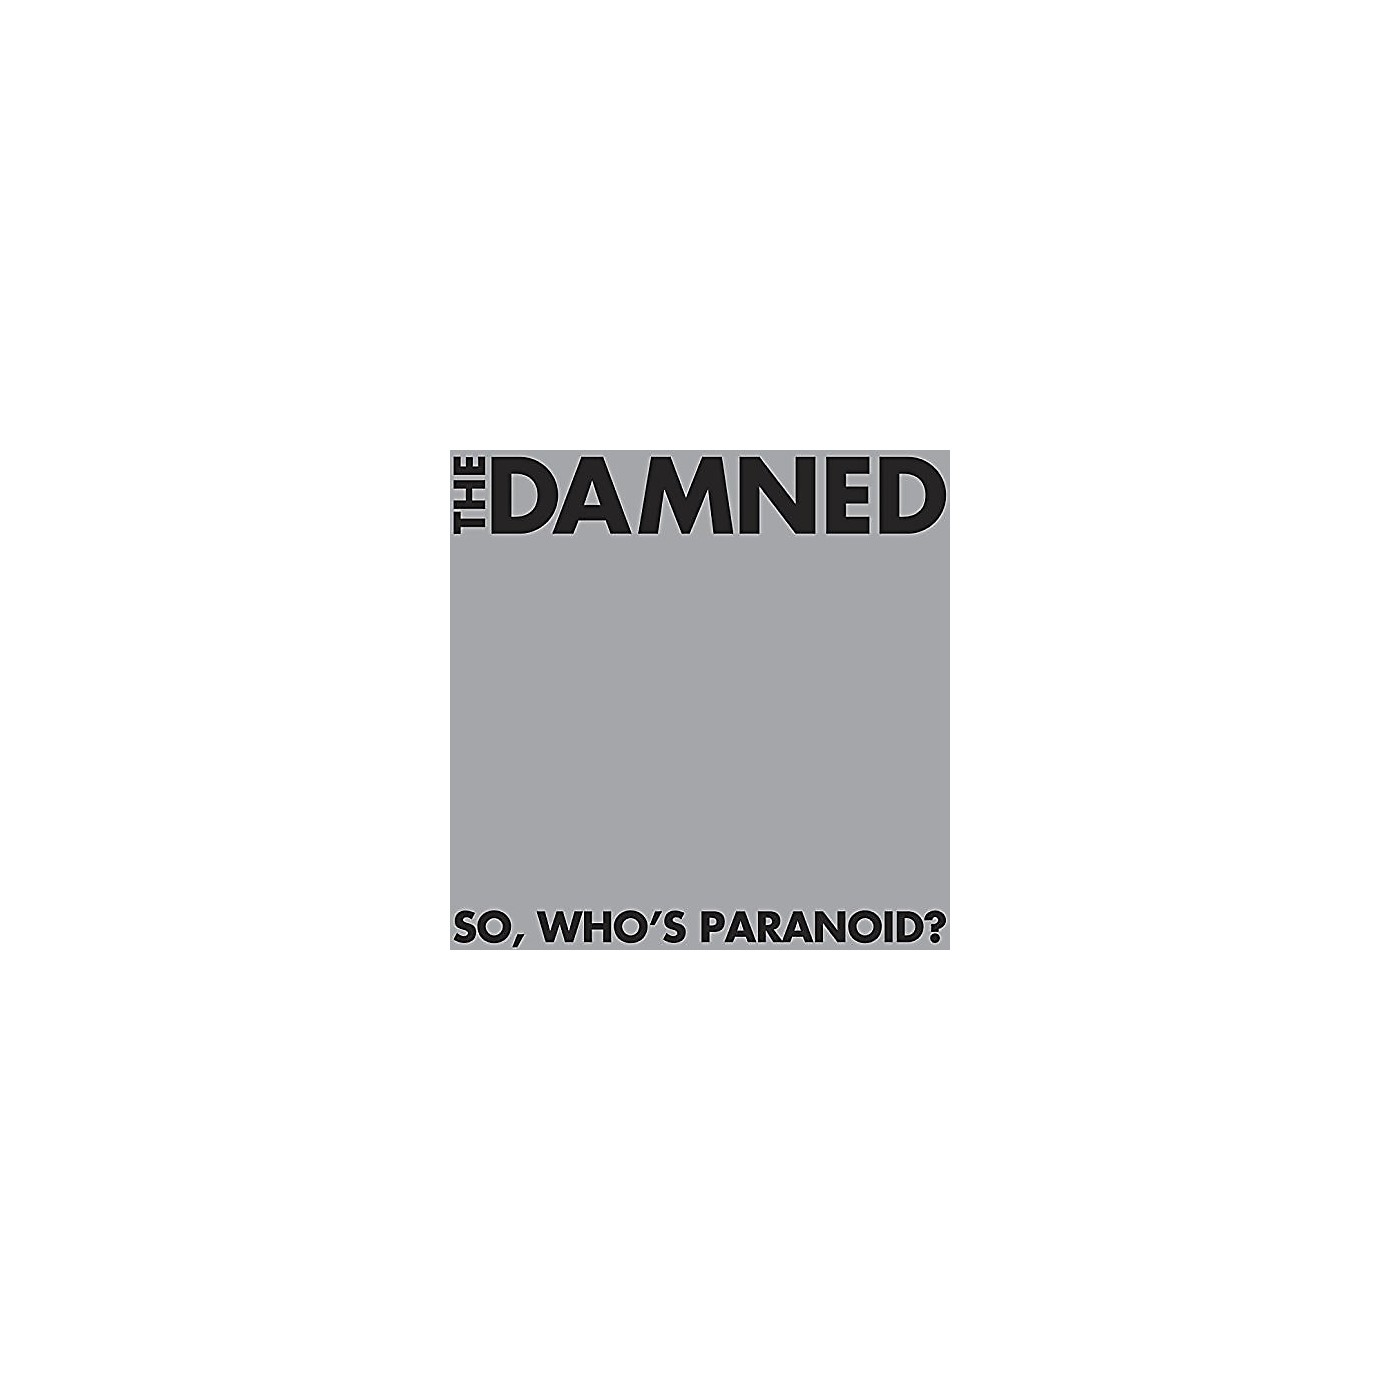 Alliance The Damned - So Who's Paranoid? thumbnail